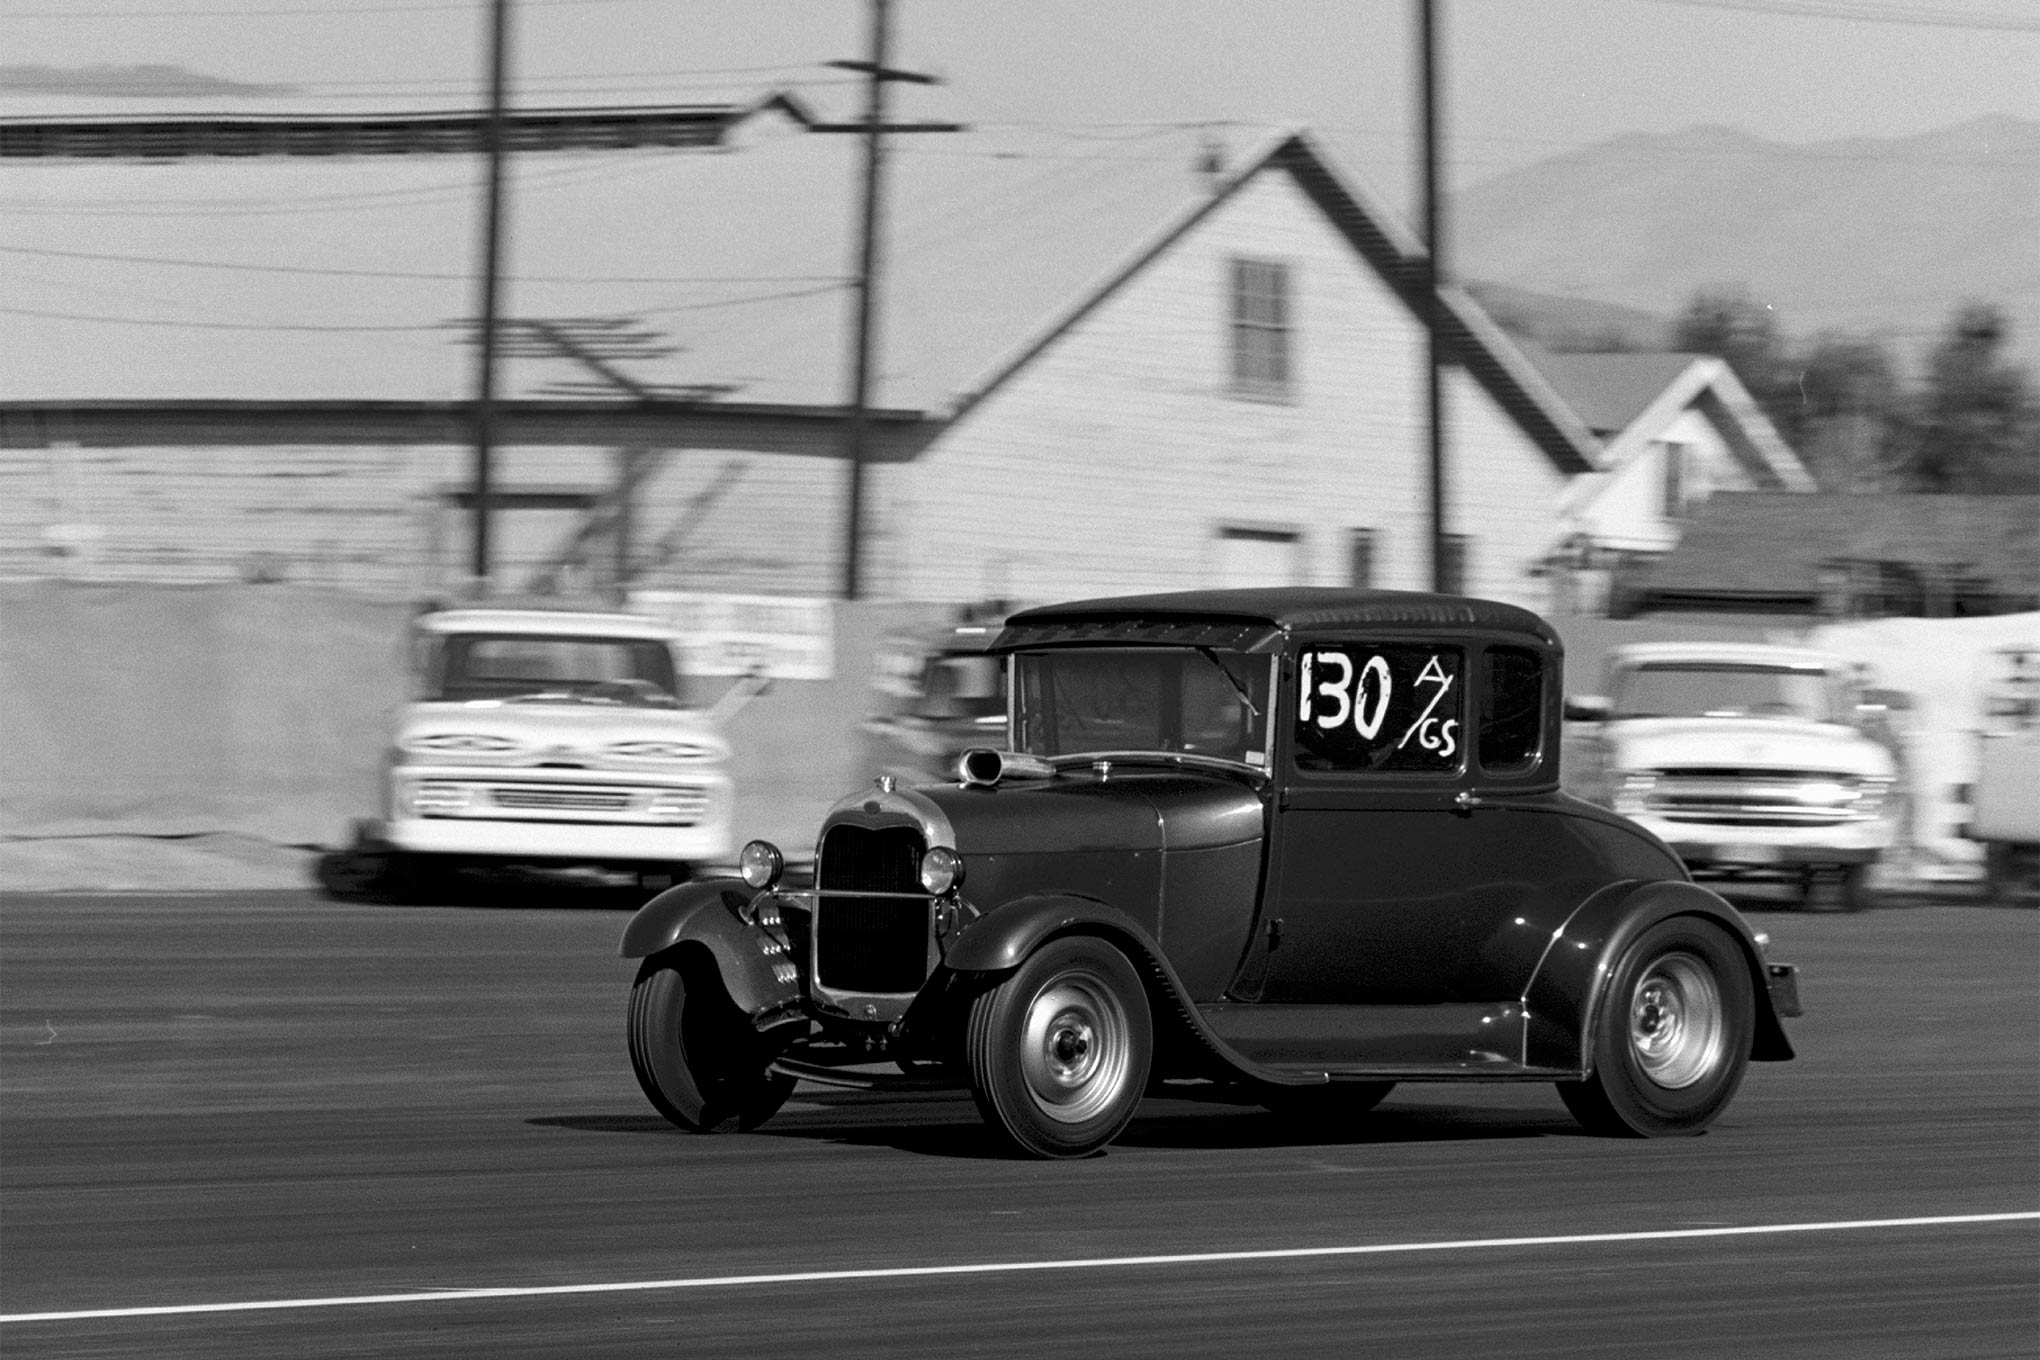 Another famous name in drag racing, Joe Pisano, in his 1929 Model A coupe, getting an A/Gas class win in the Little Eliminator races.